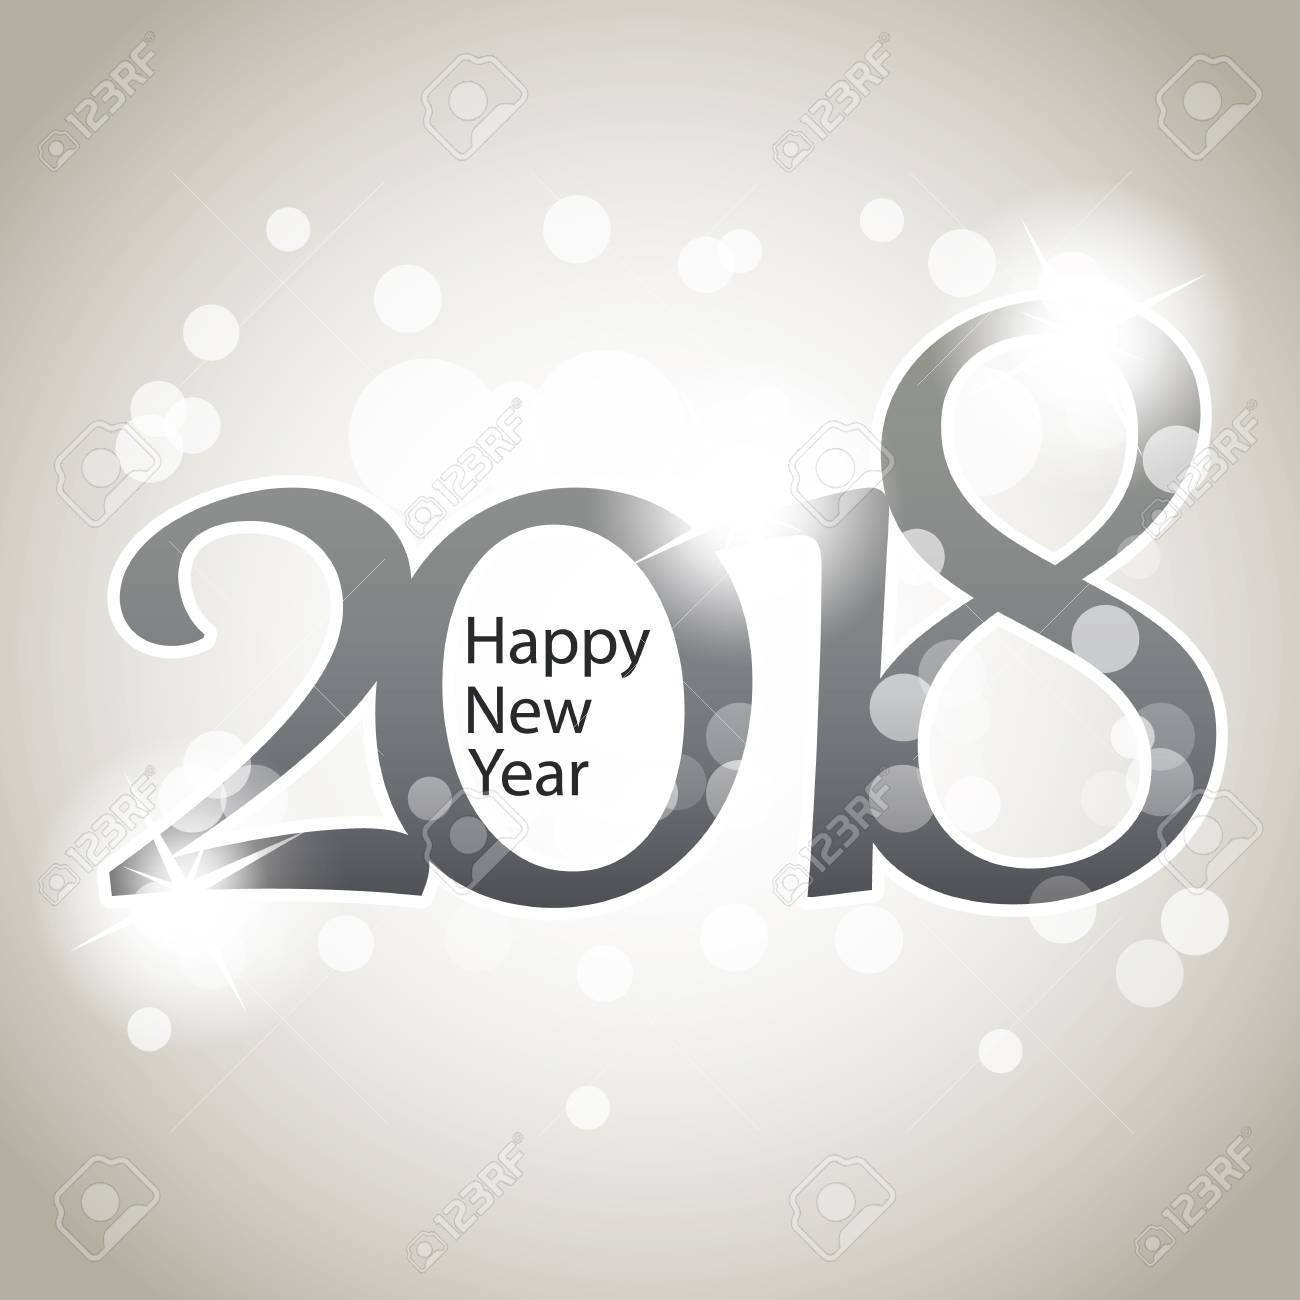 sparkling silver grey 2018 happy new year background design template stock vector 87424773